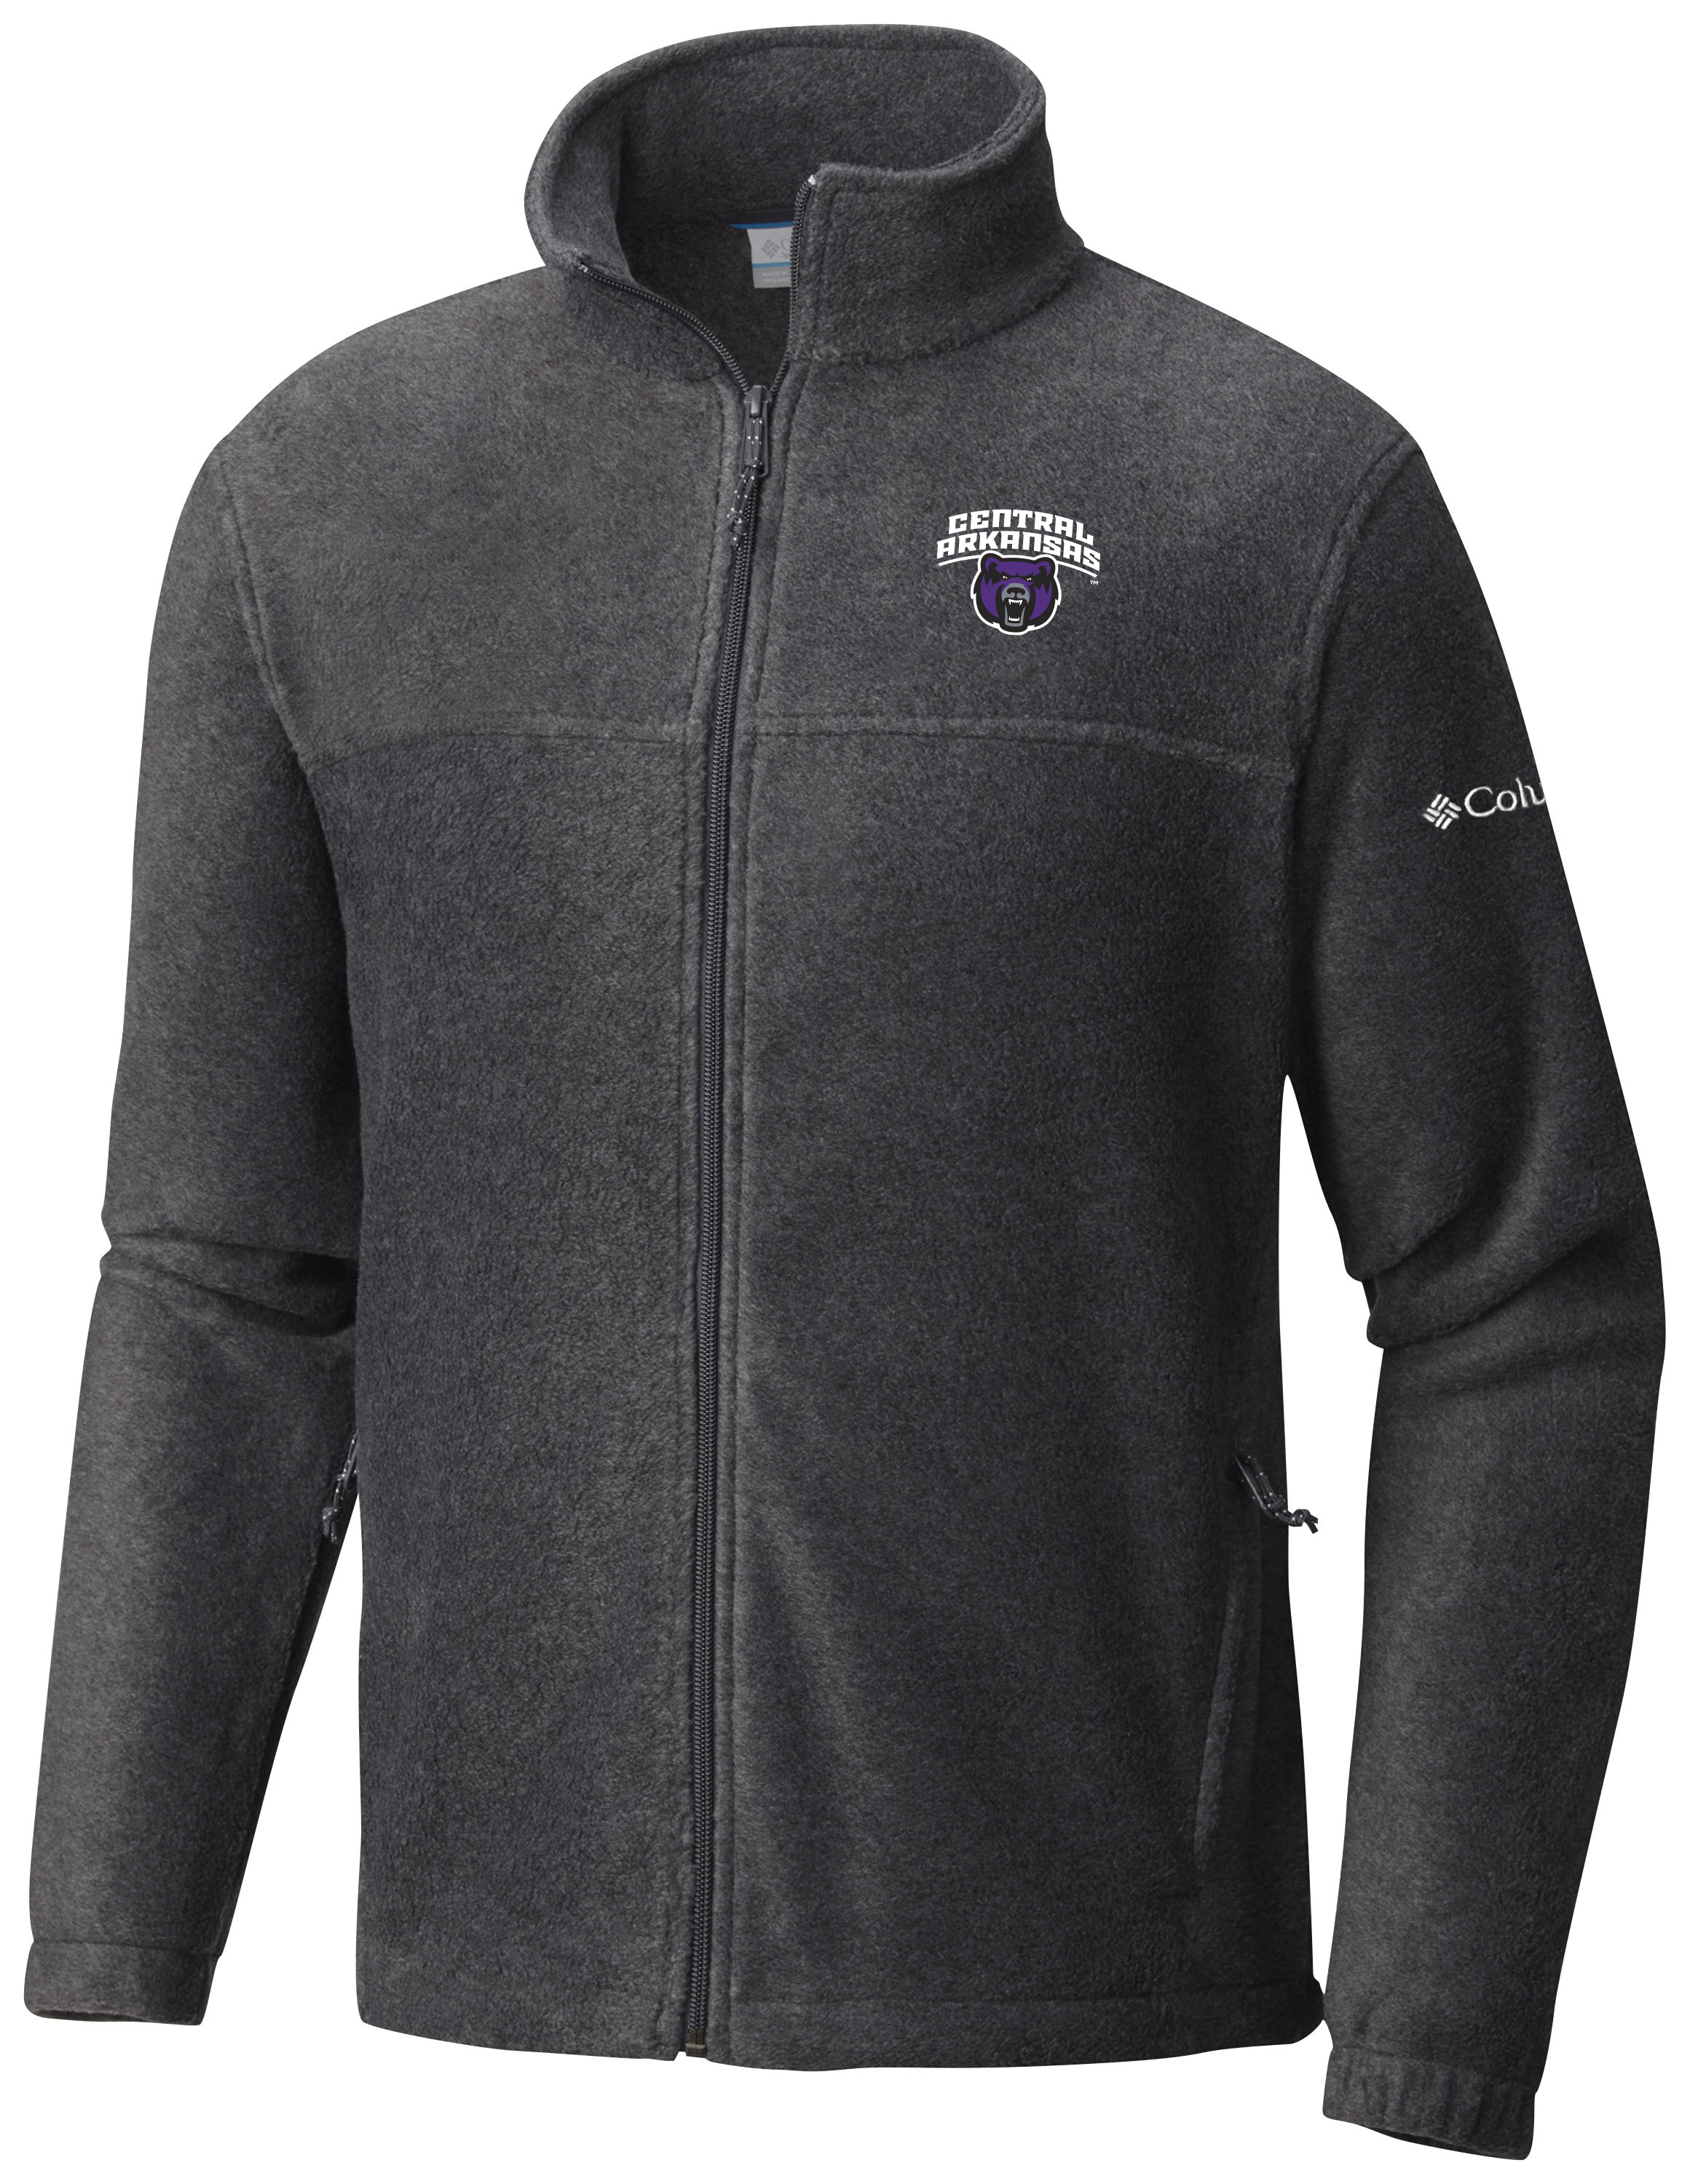 Flanker Full Zip Jacket